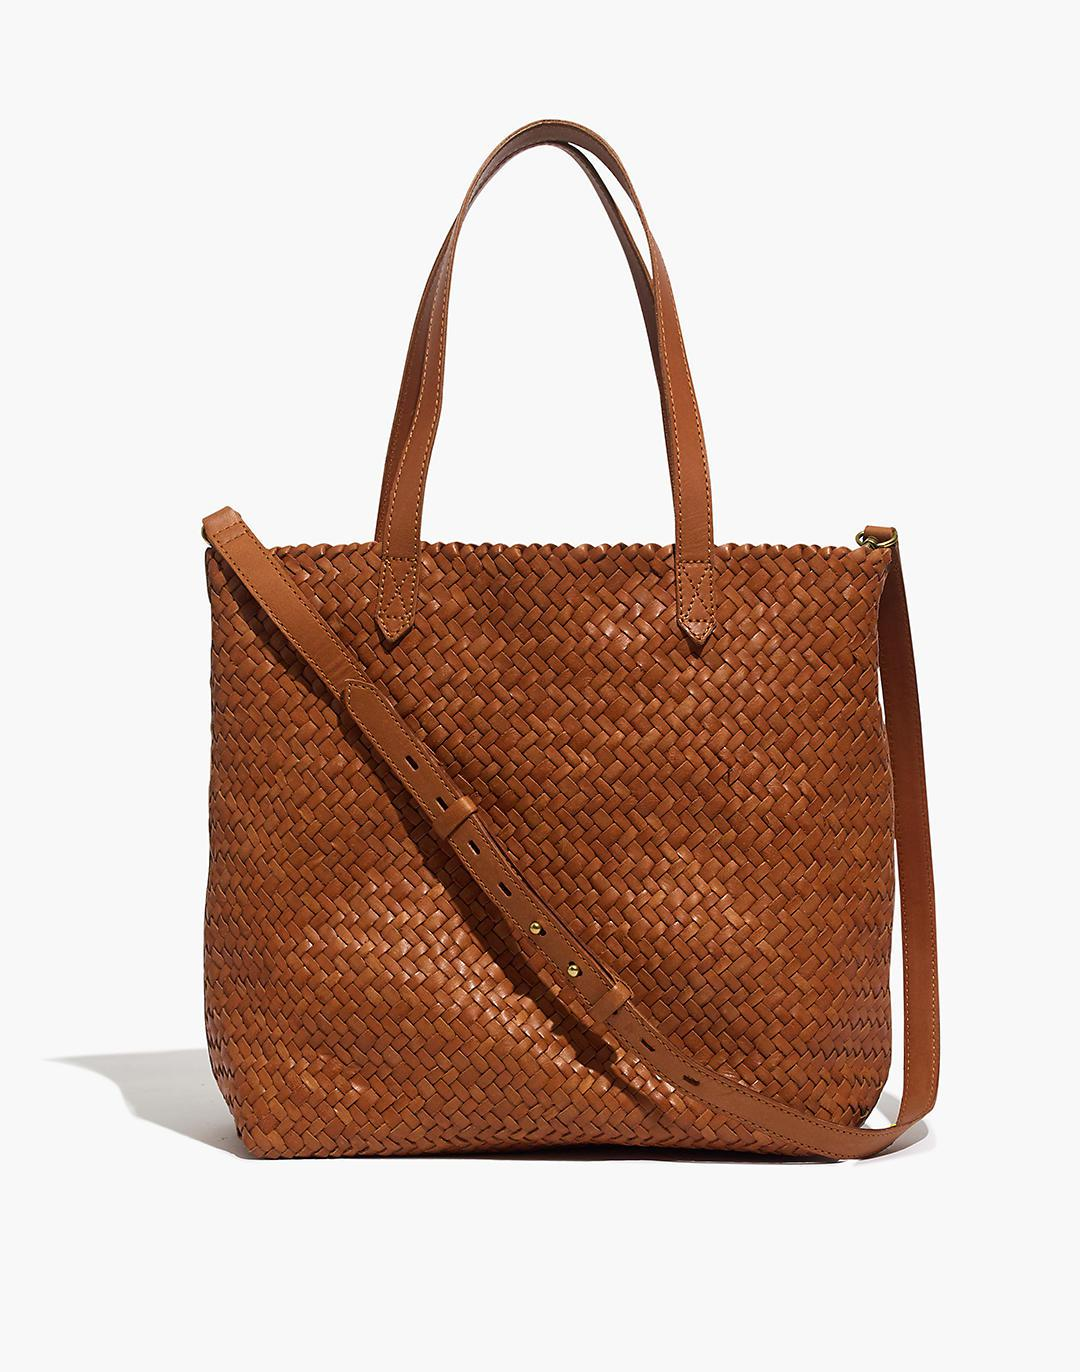 The Medium Transport Tote: Woven Leather Edition